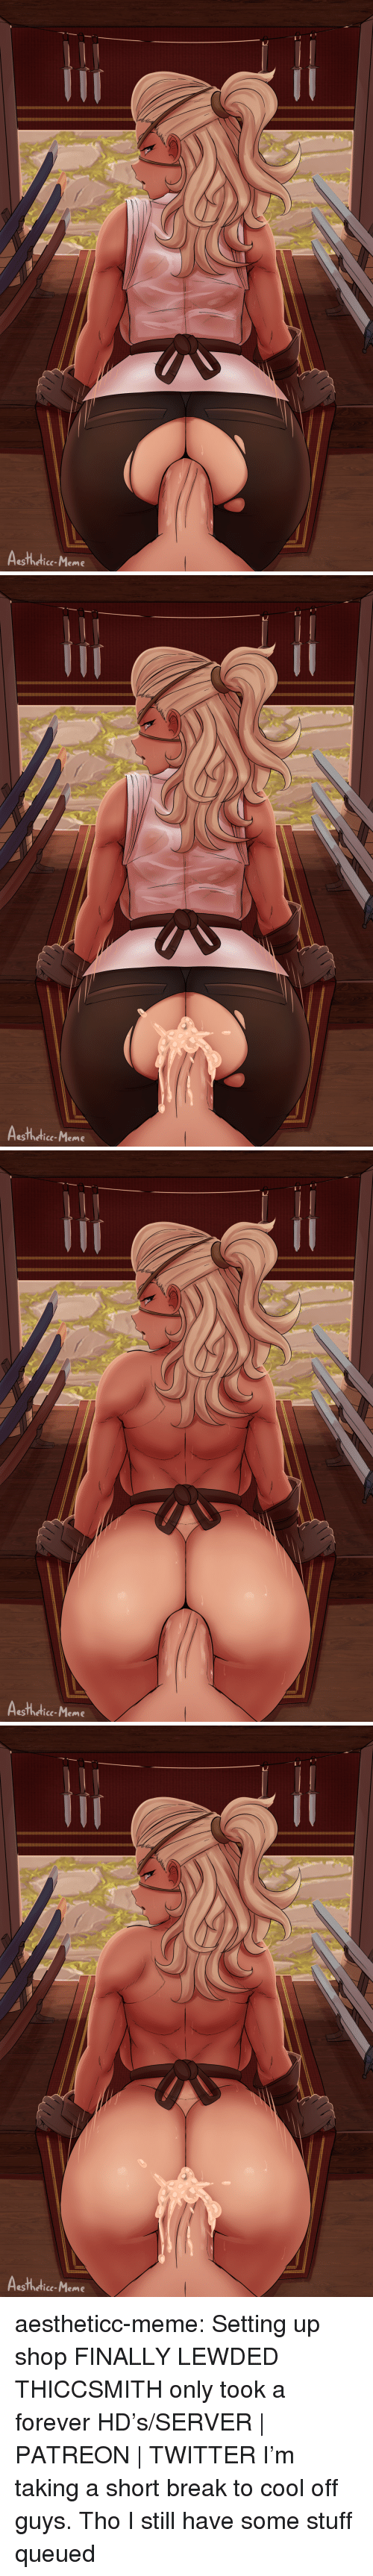 Meme Tumblr: L2  esThefice-Meme   L2  esThefice-Meme   esThefice-Meme   esThefice-Meme aestheticc-meme: Setting up shop FINALLY LEWDED THICCSMITH only took a forever HD's/SERVER| PATREON| TWITTER I'm taking a short break to cool off guys. Tho I still have some stuff queued